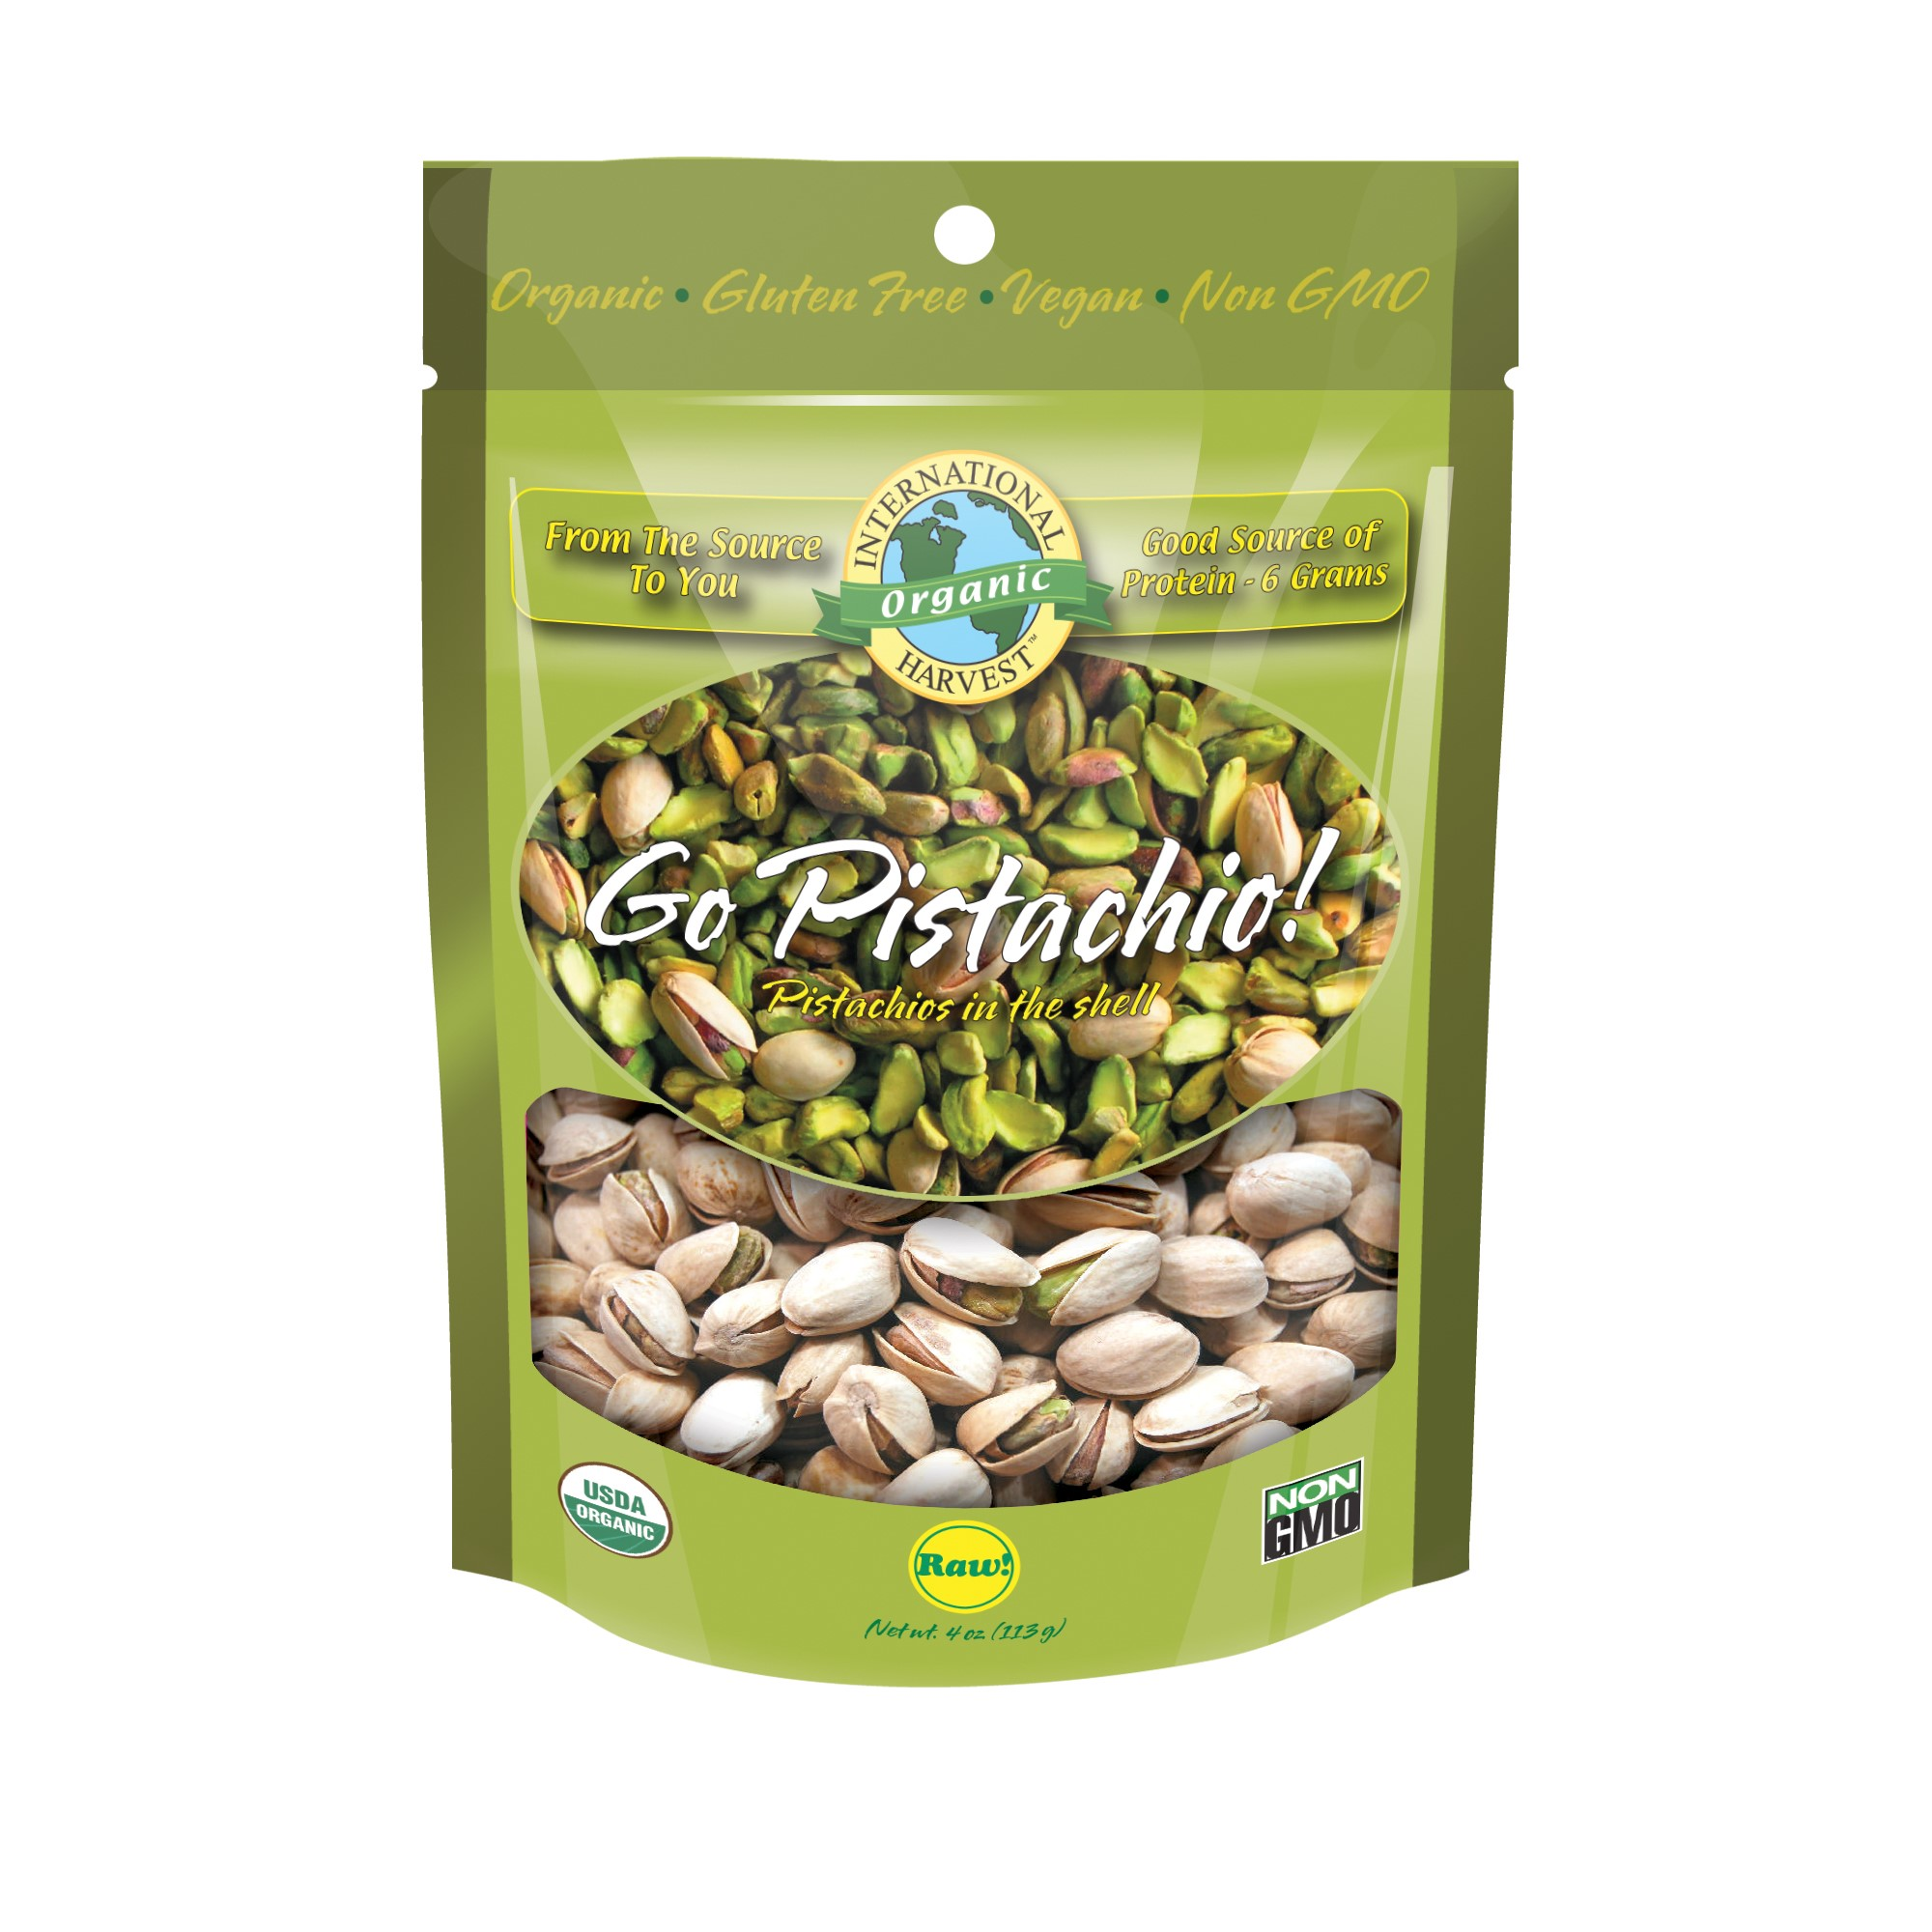 Organic Raw Pistachios in Shell 4 OZ. by International Harvest